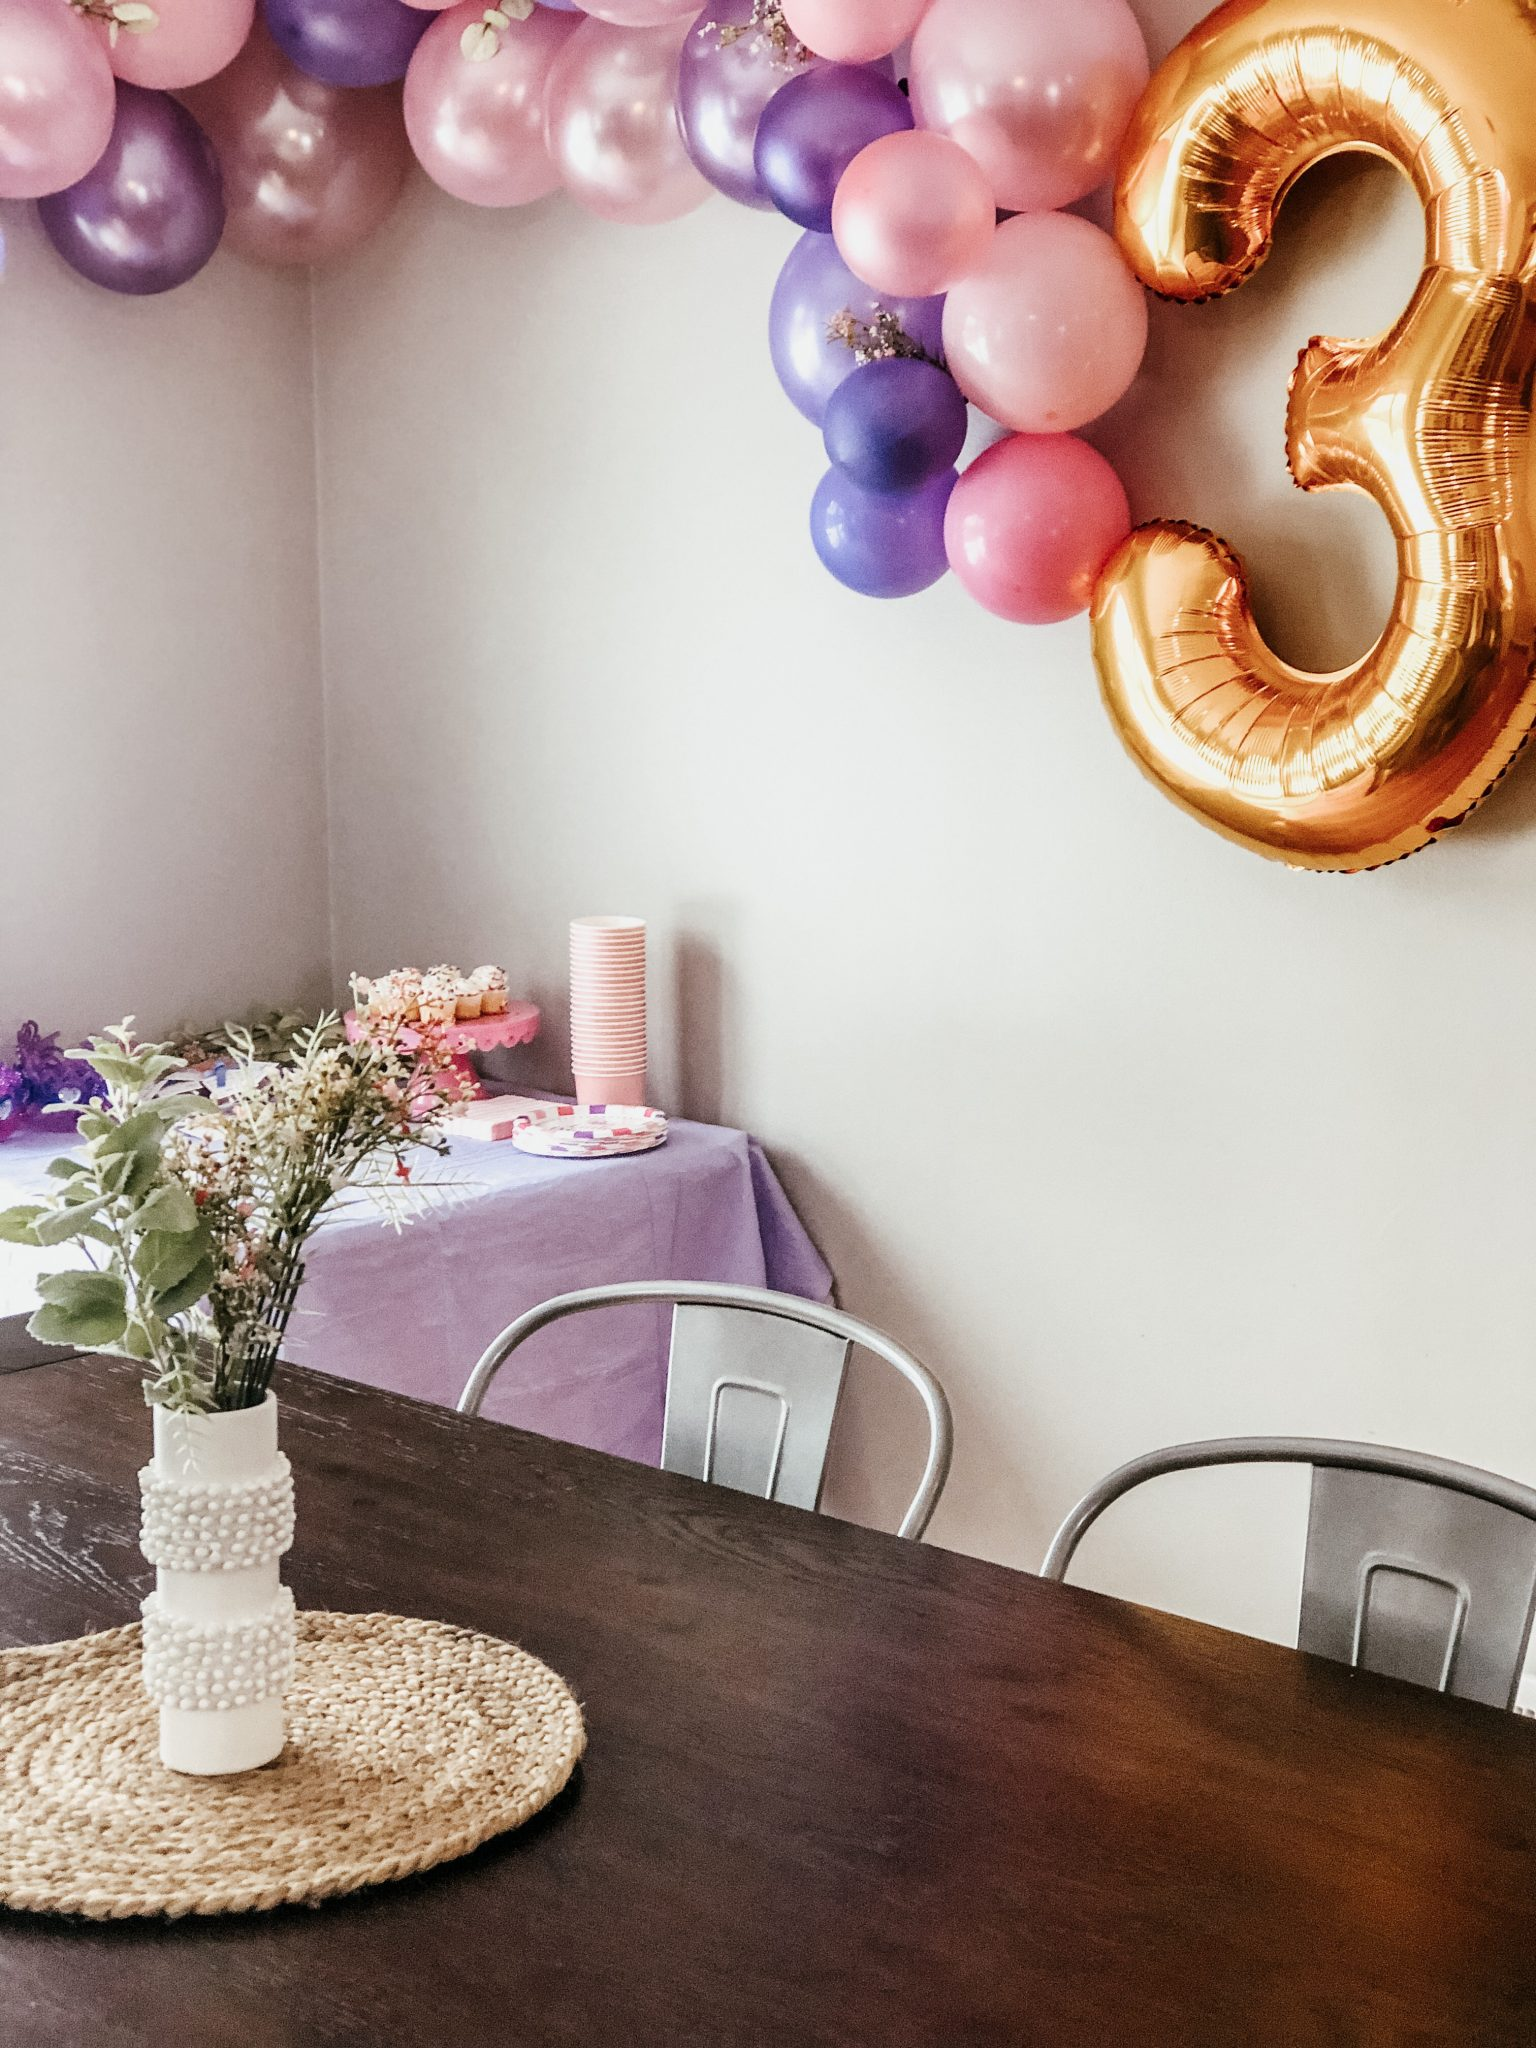 Cutest princess party made easy | Daily Splendor Life and Style Blog | birthday party, girls party, party box, party decorations #birthdaydecorations #partysupplies #balloongarland #princessparty #sponsored